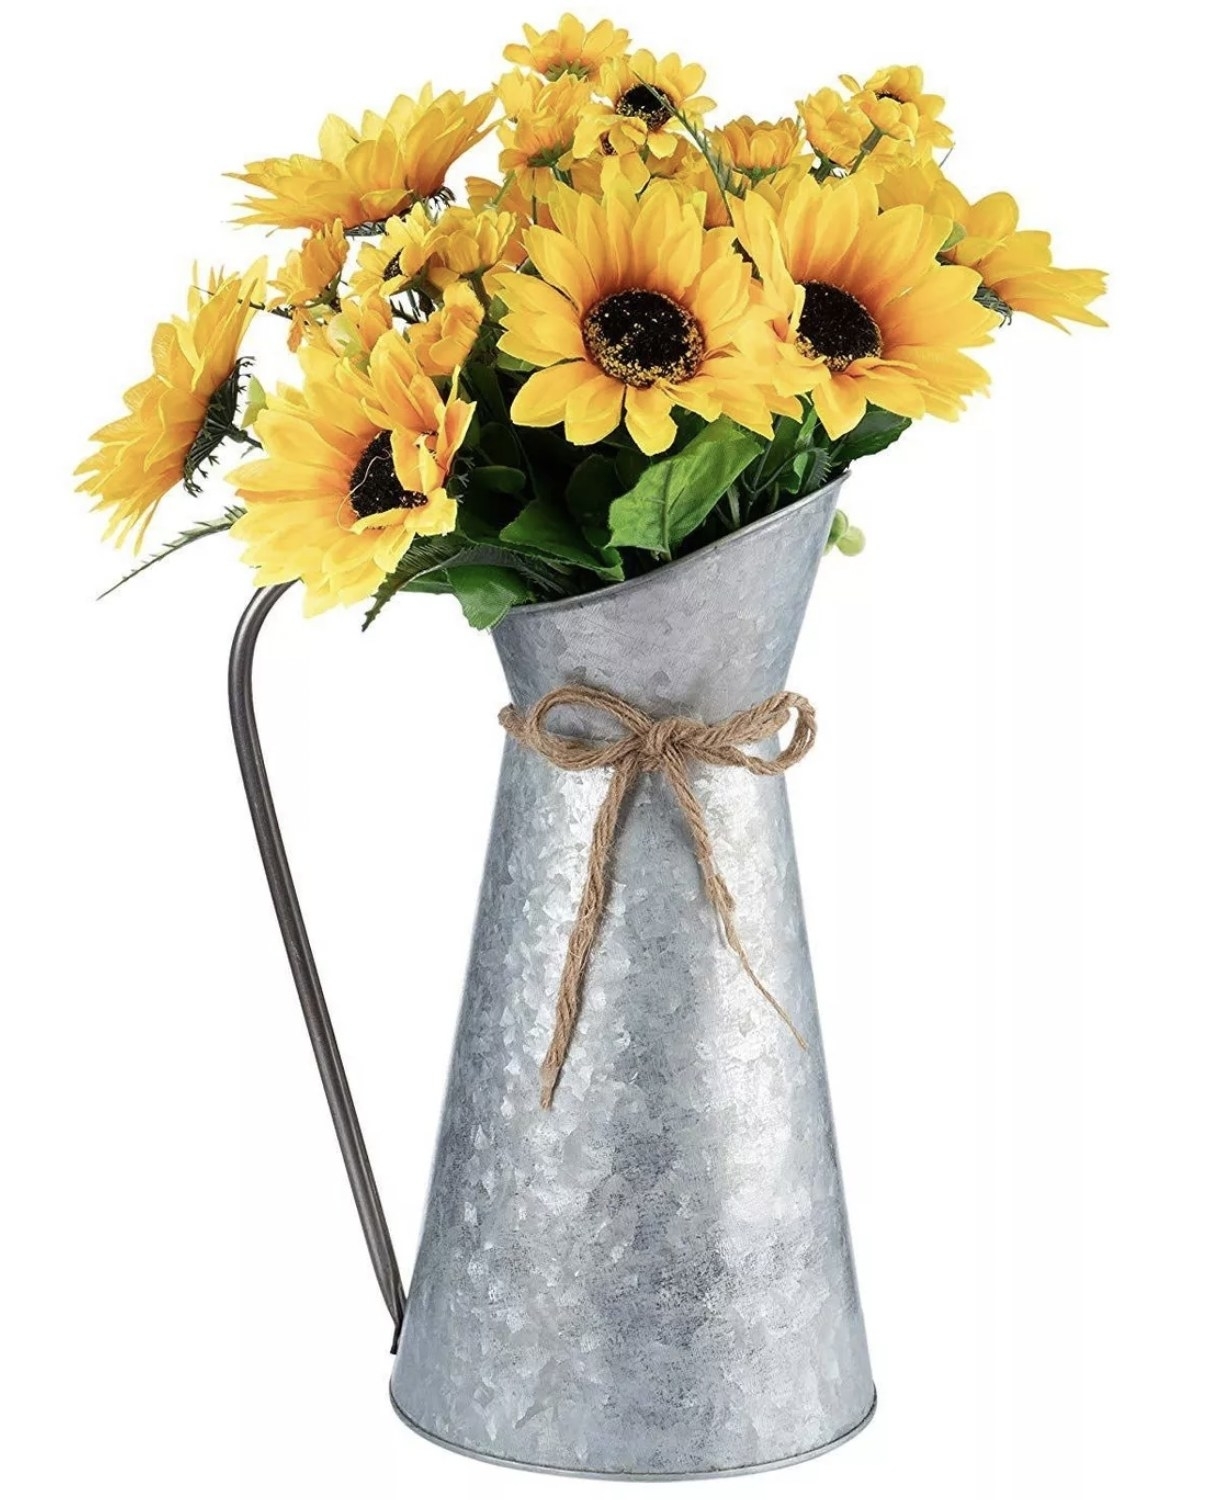 a silver metal pitcher holding a bouquet of daisies